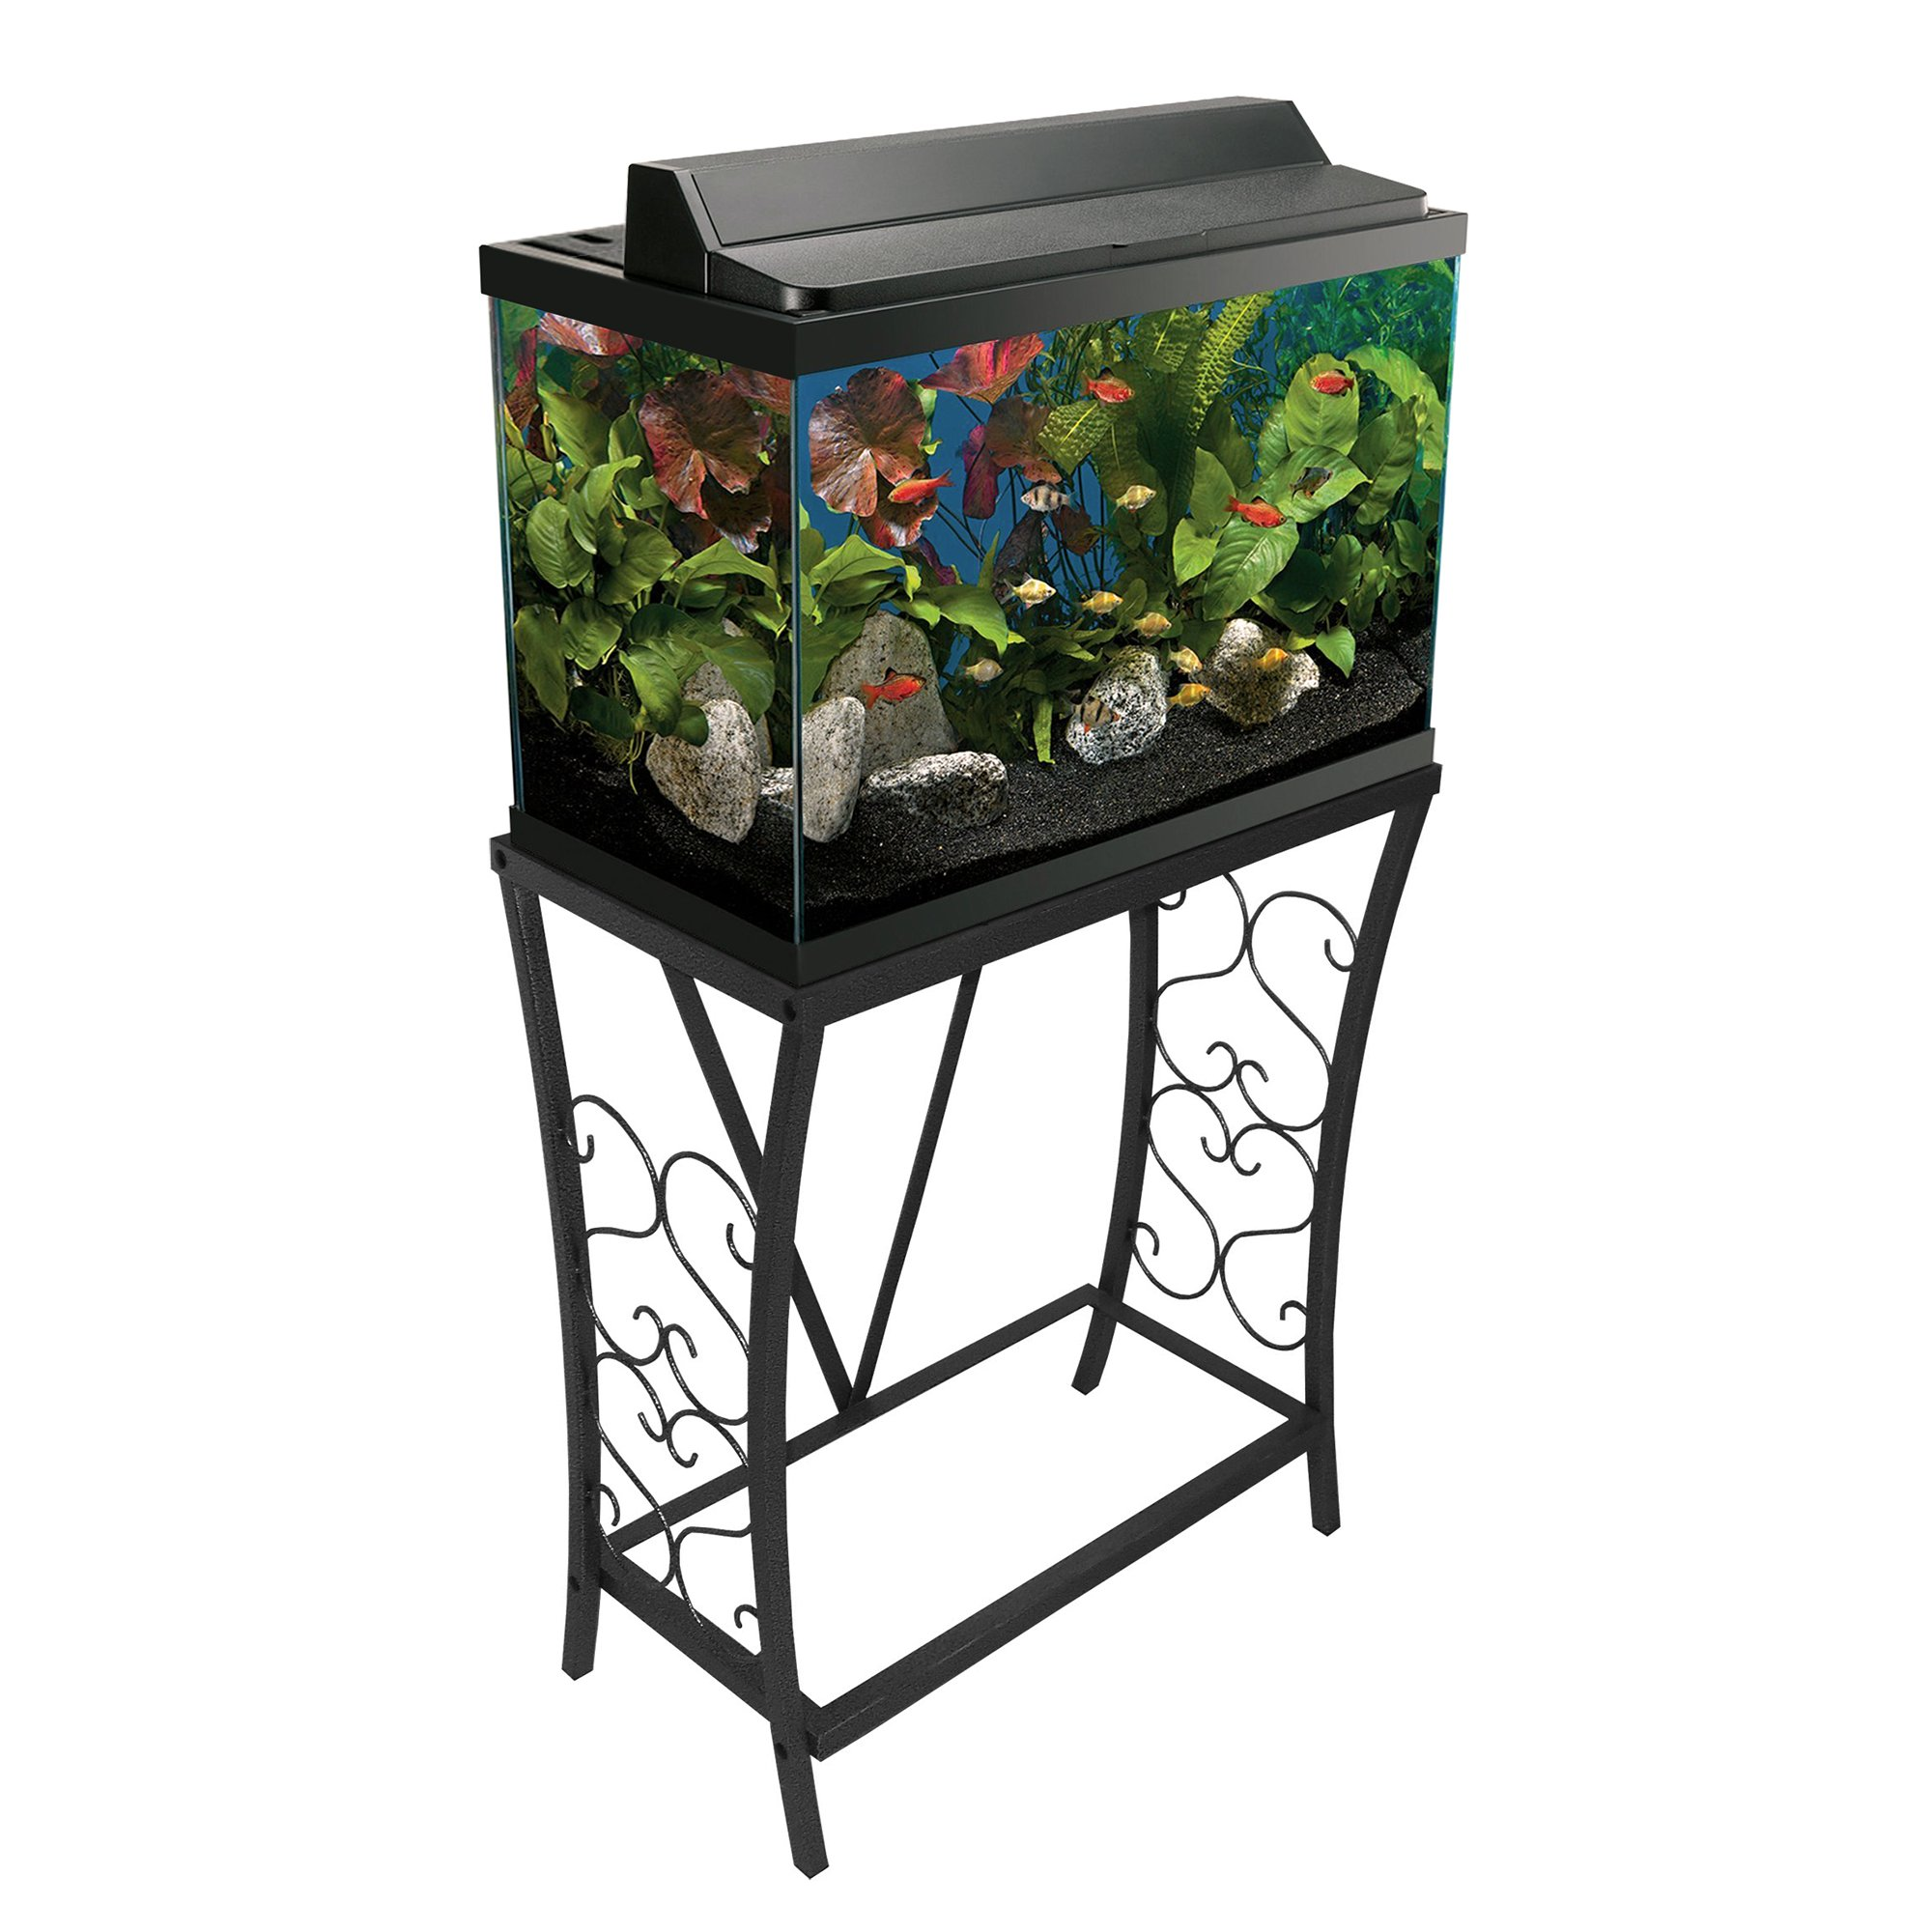 Aquatic fundamentals black scroll aquarium stand 20 for Fish tanks with stands